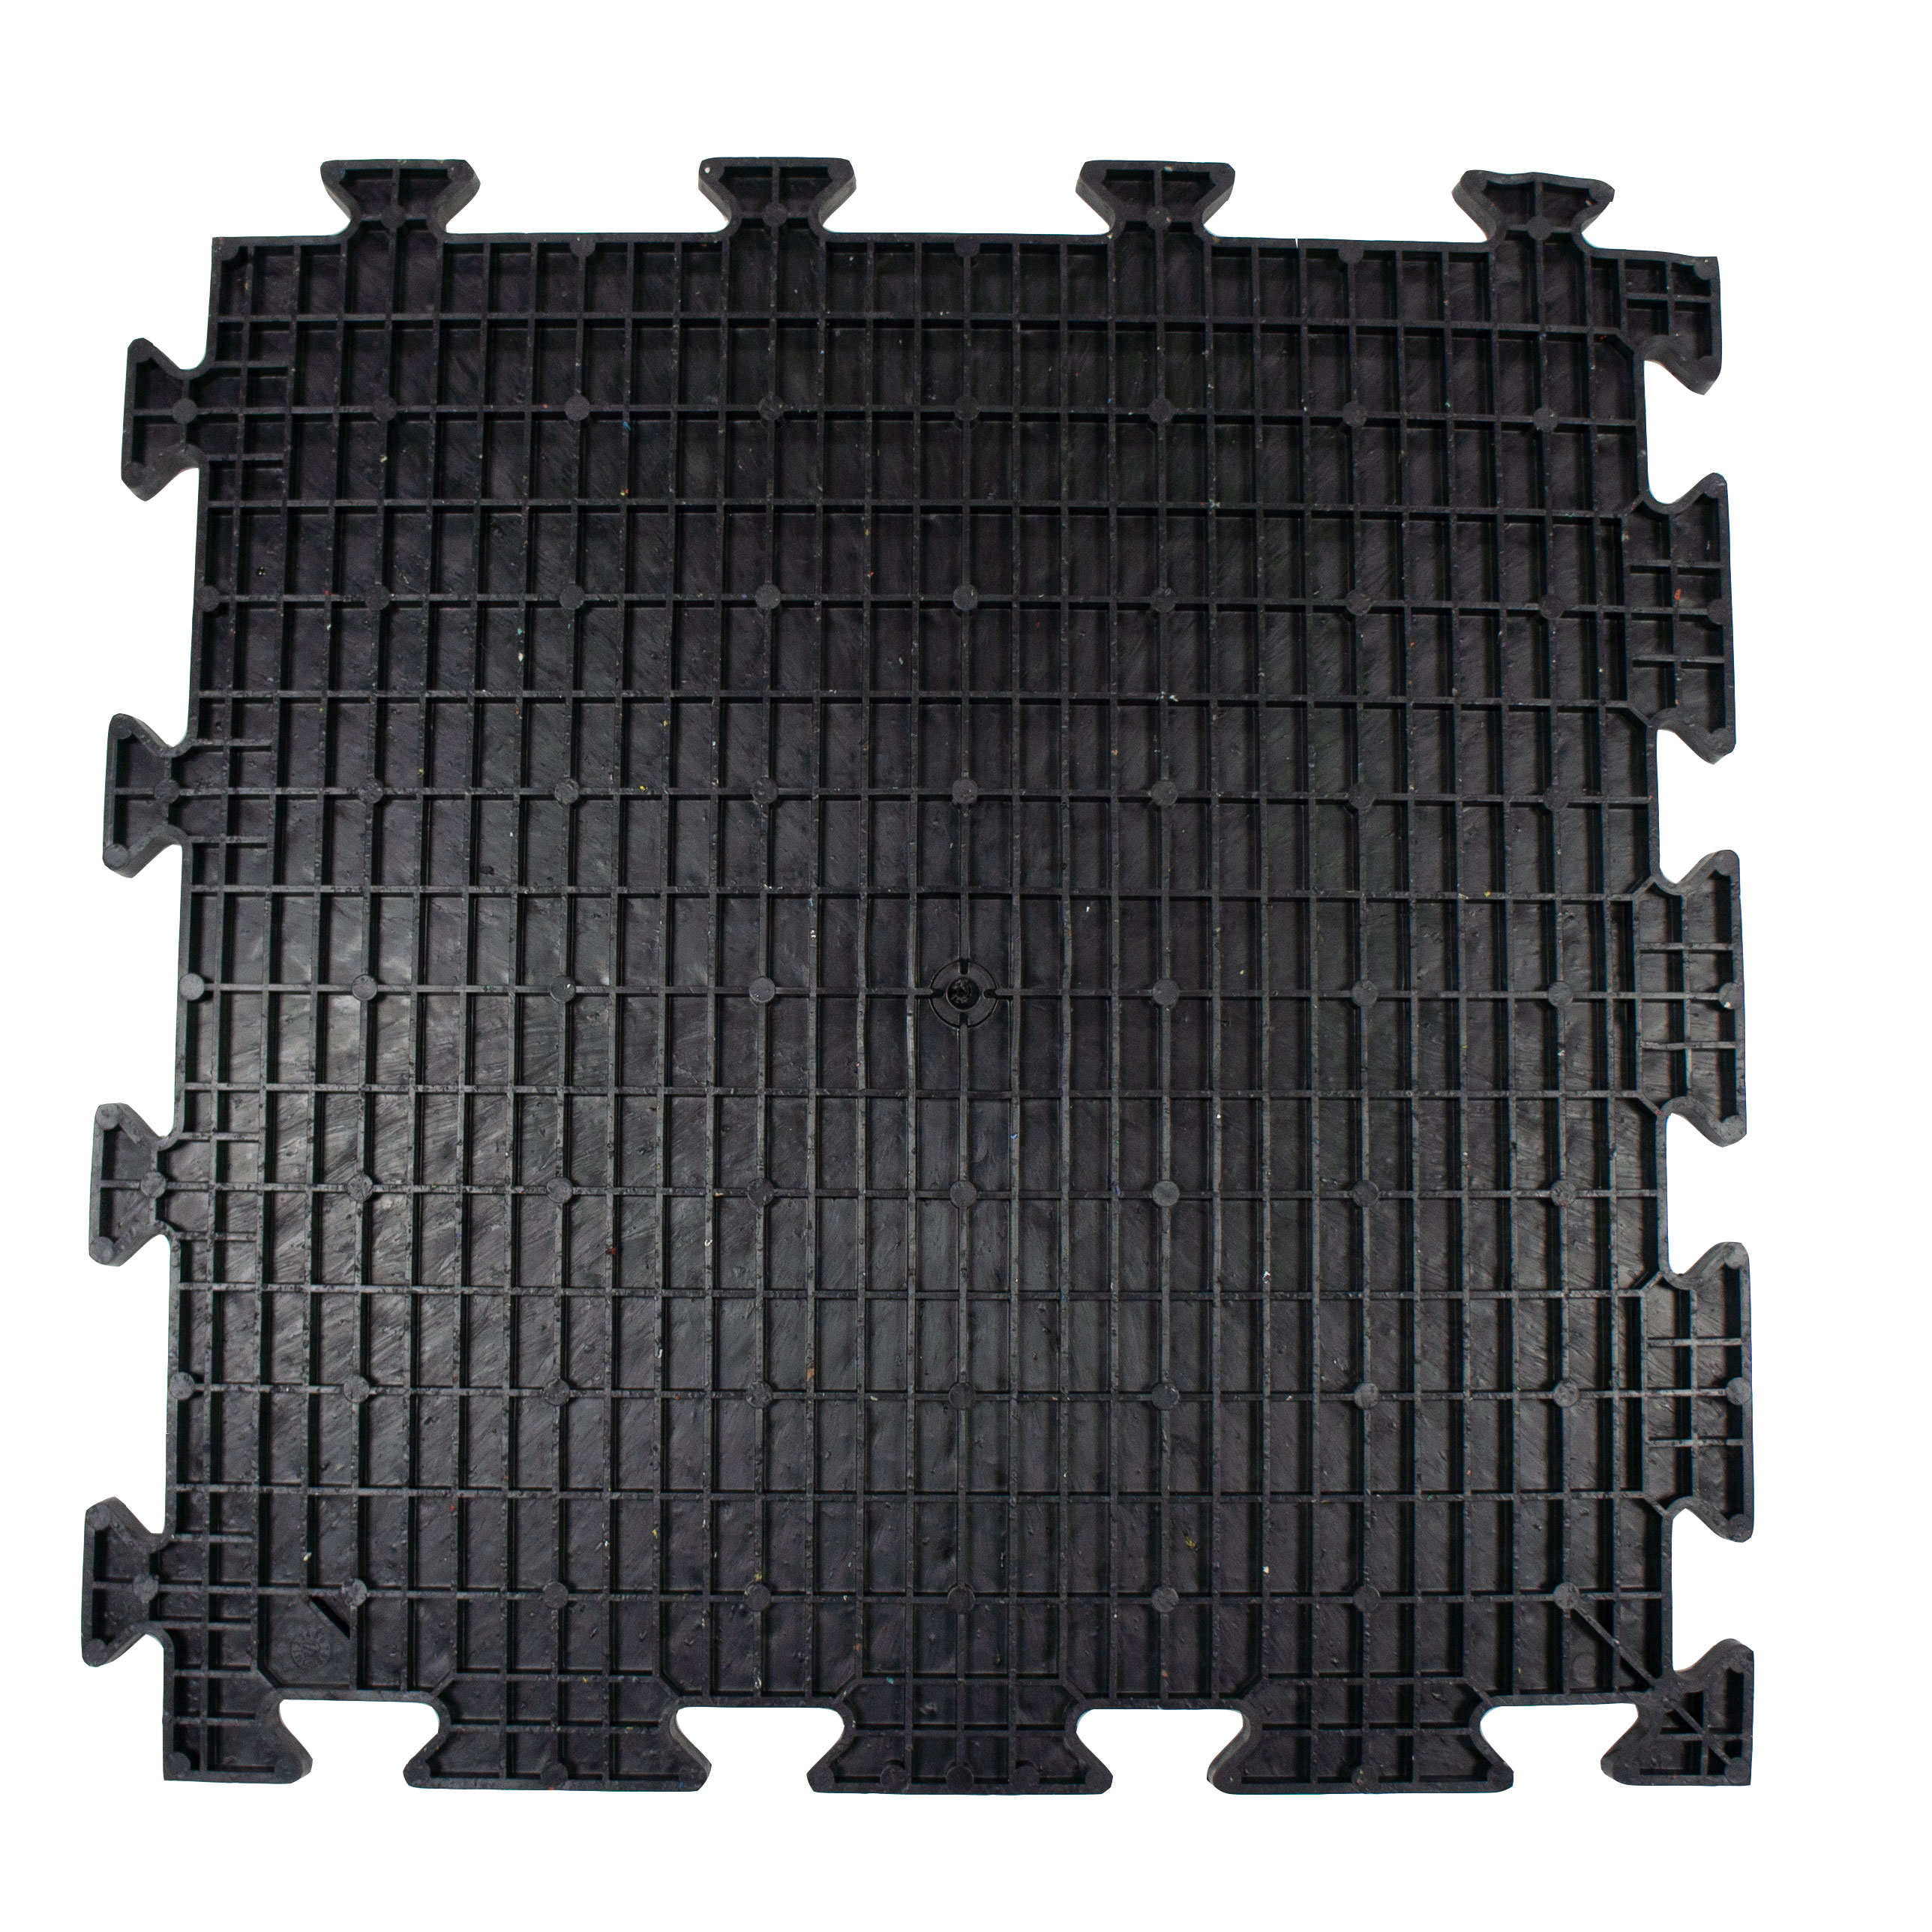 the Bottom side of MotoMat Anti-Fatigue Tile From Mototile